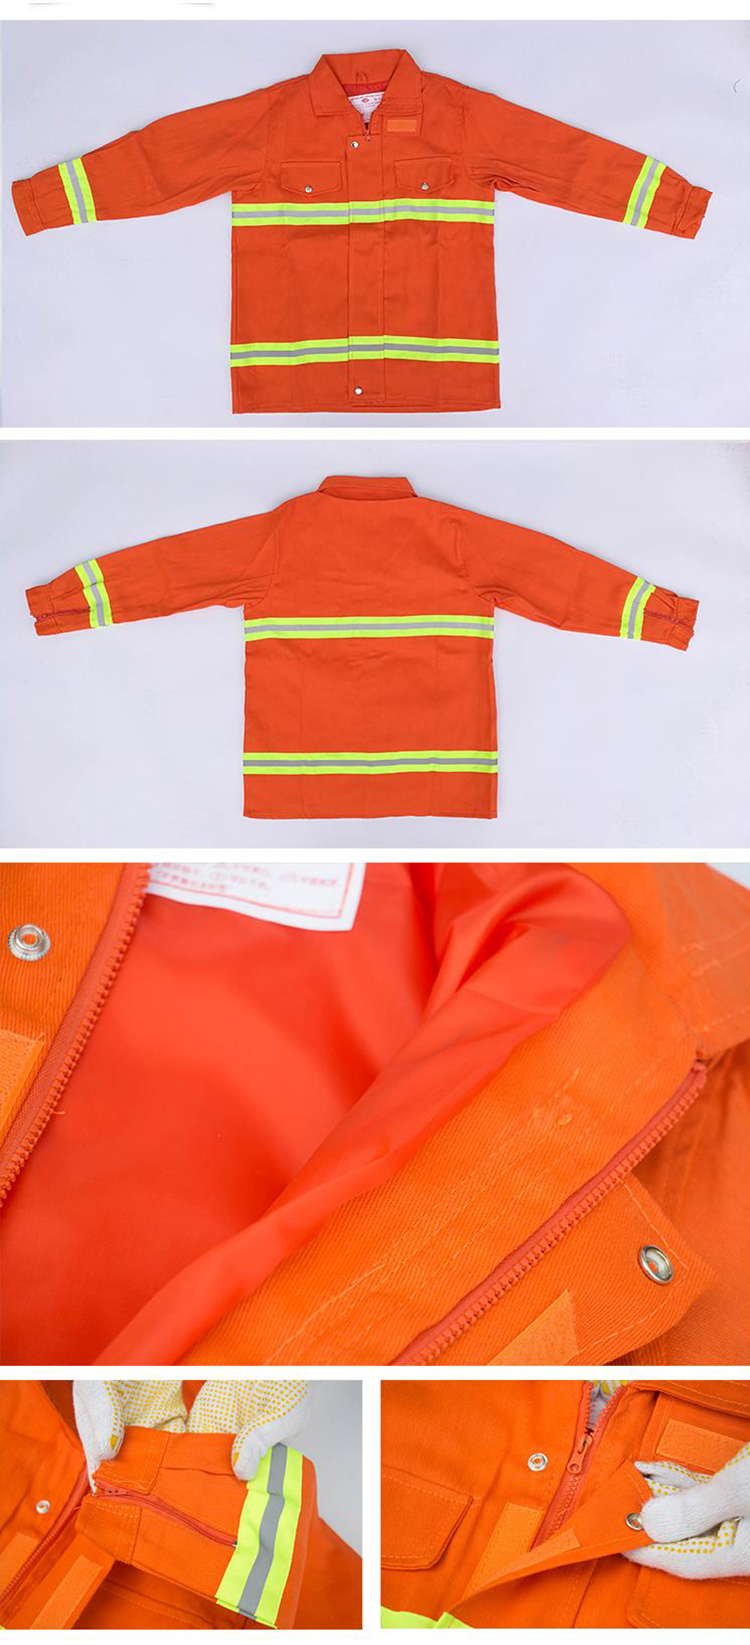 Fire Fighting Suit Safety Clothes Fireproof Flame-retardant Protective Clothing Miniature Fire Station Equipment 6 Pieces Suit (3)